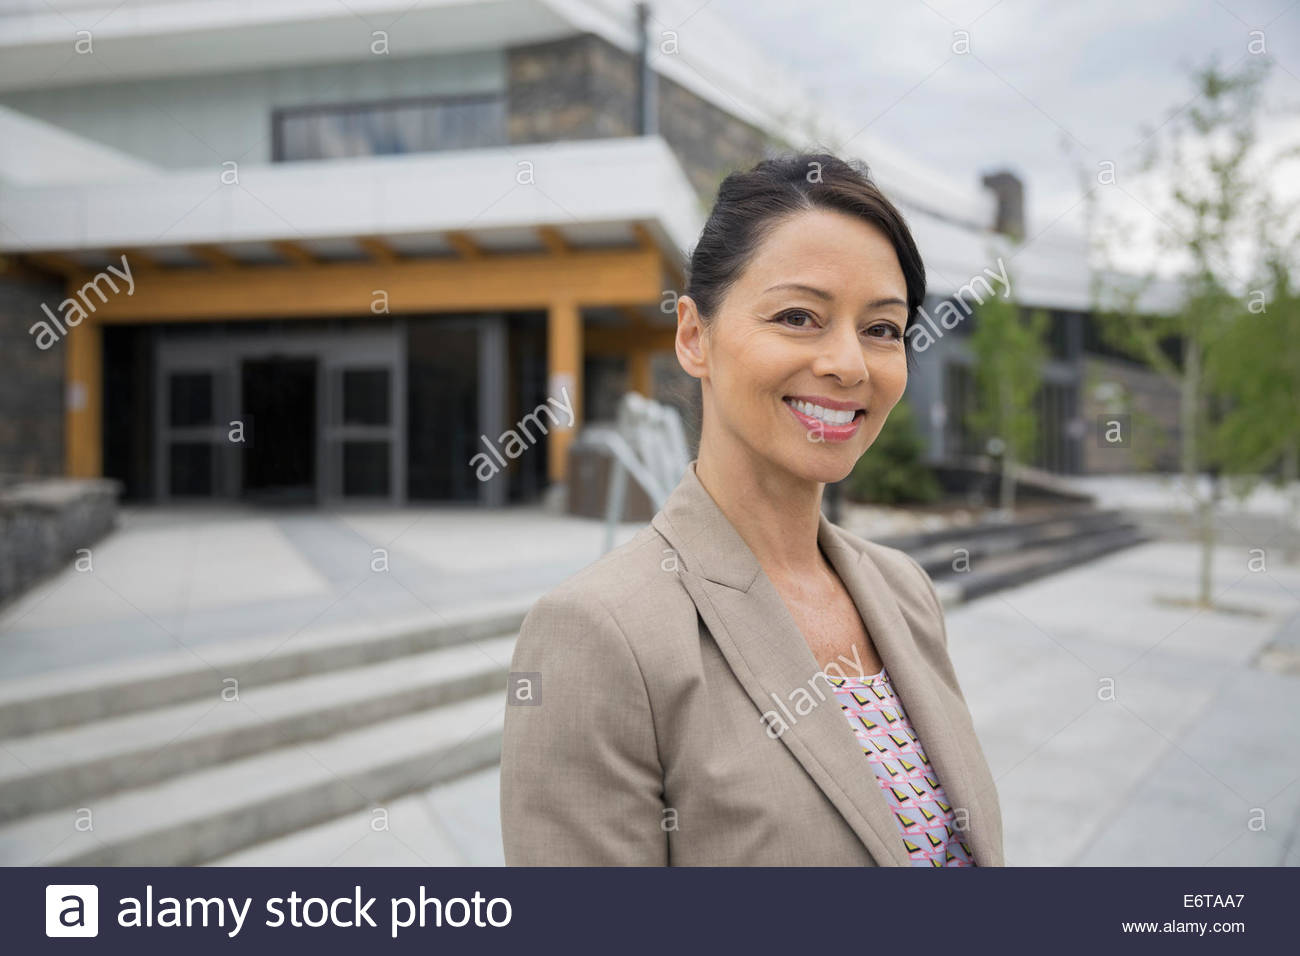 Businesswoman smiling outside office building - Stock Image